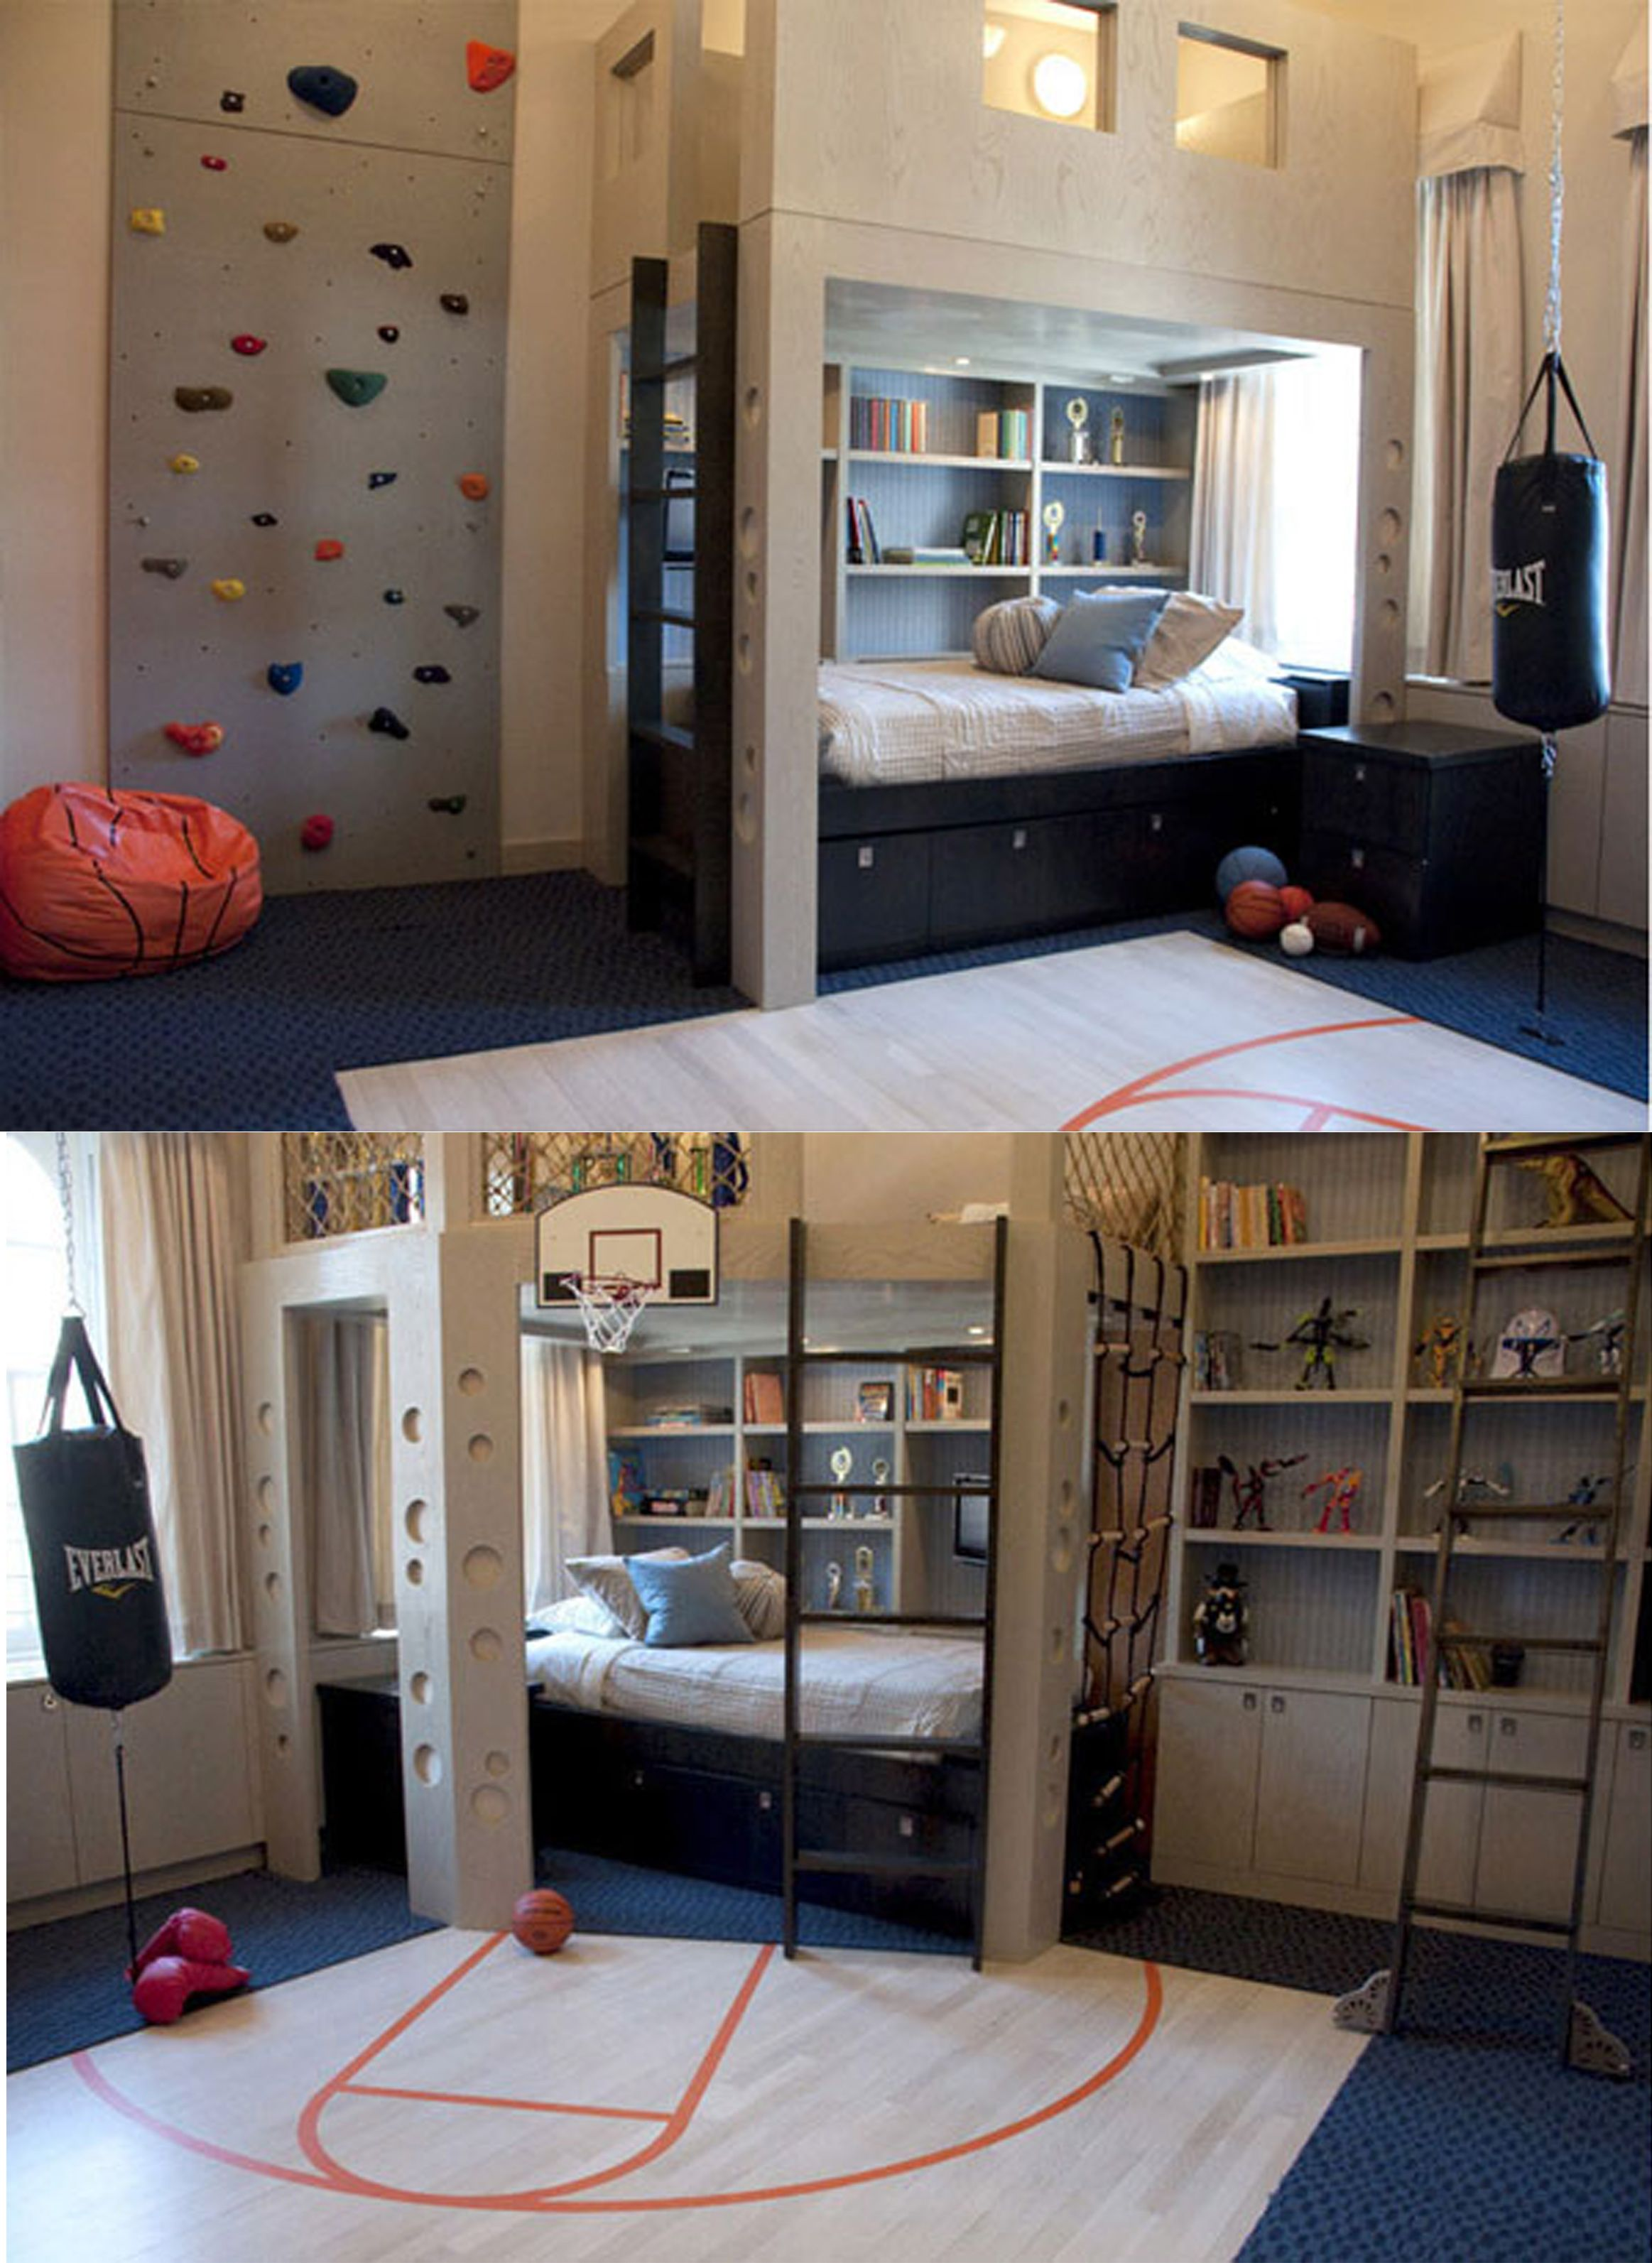 Zimmer Für Jungs Oh My Look At This Teen Boy 39s Sports Room Home